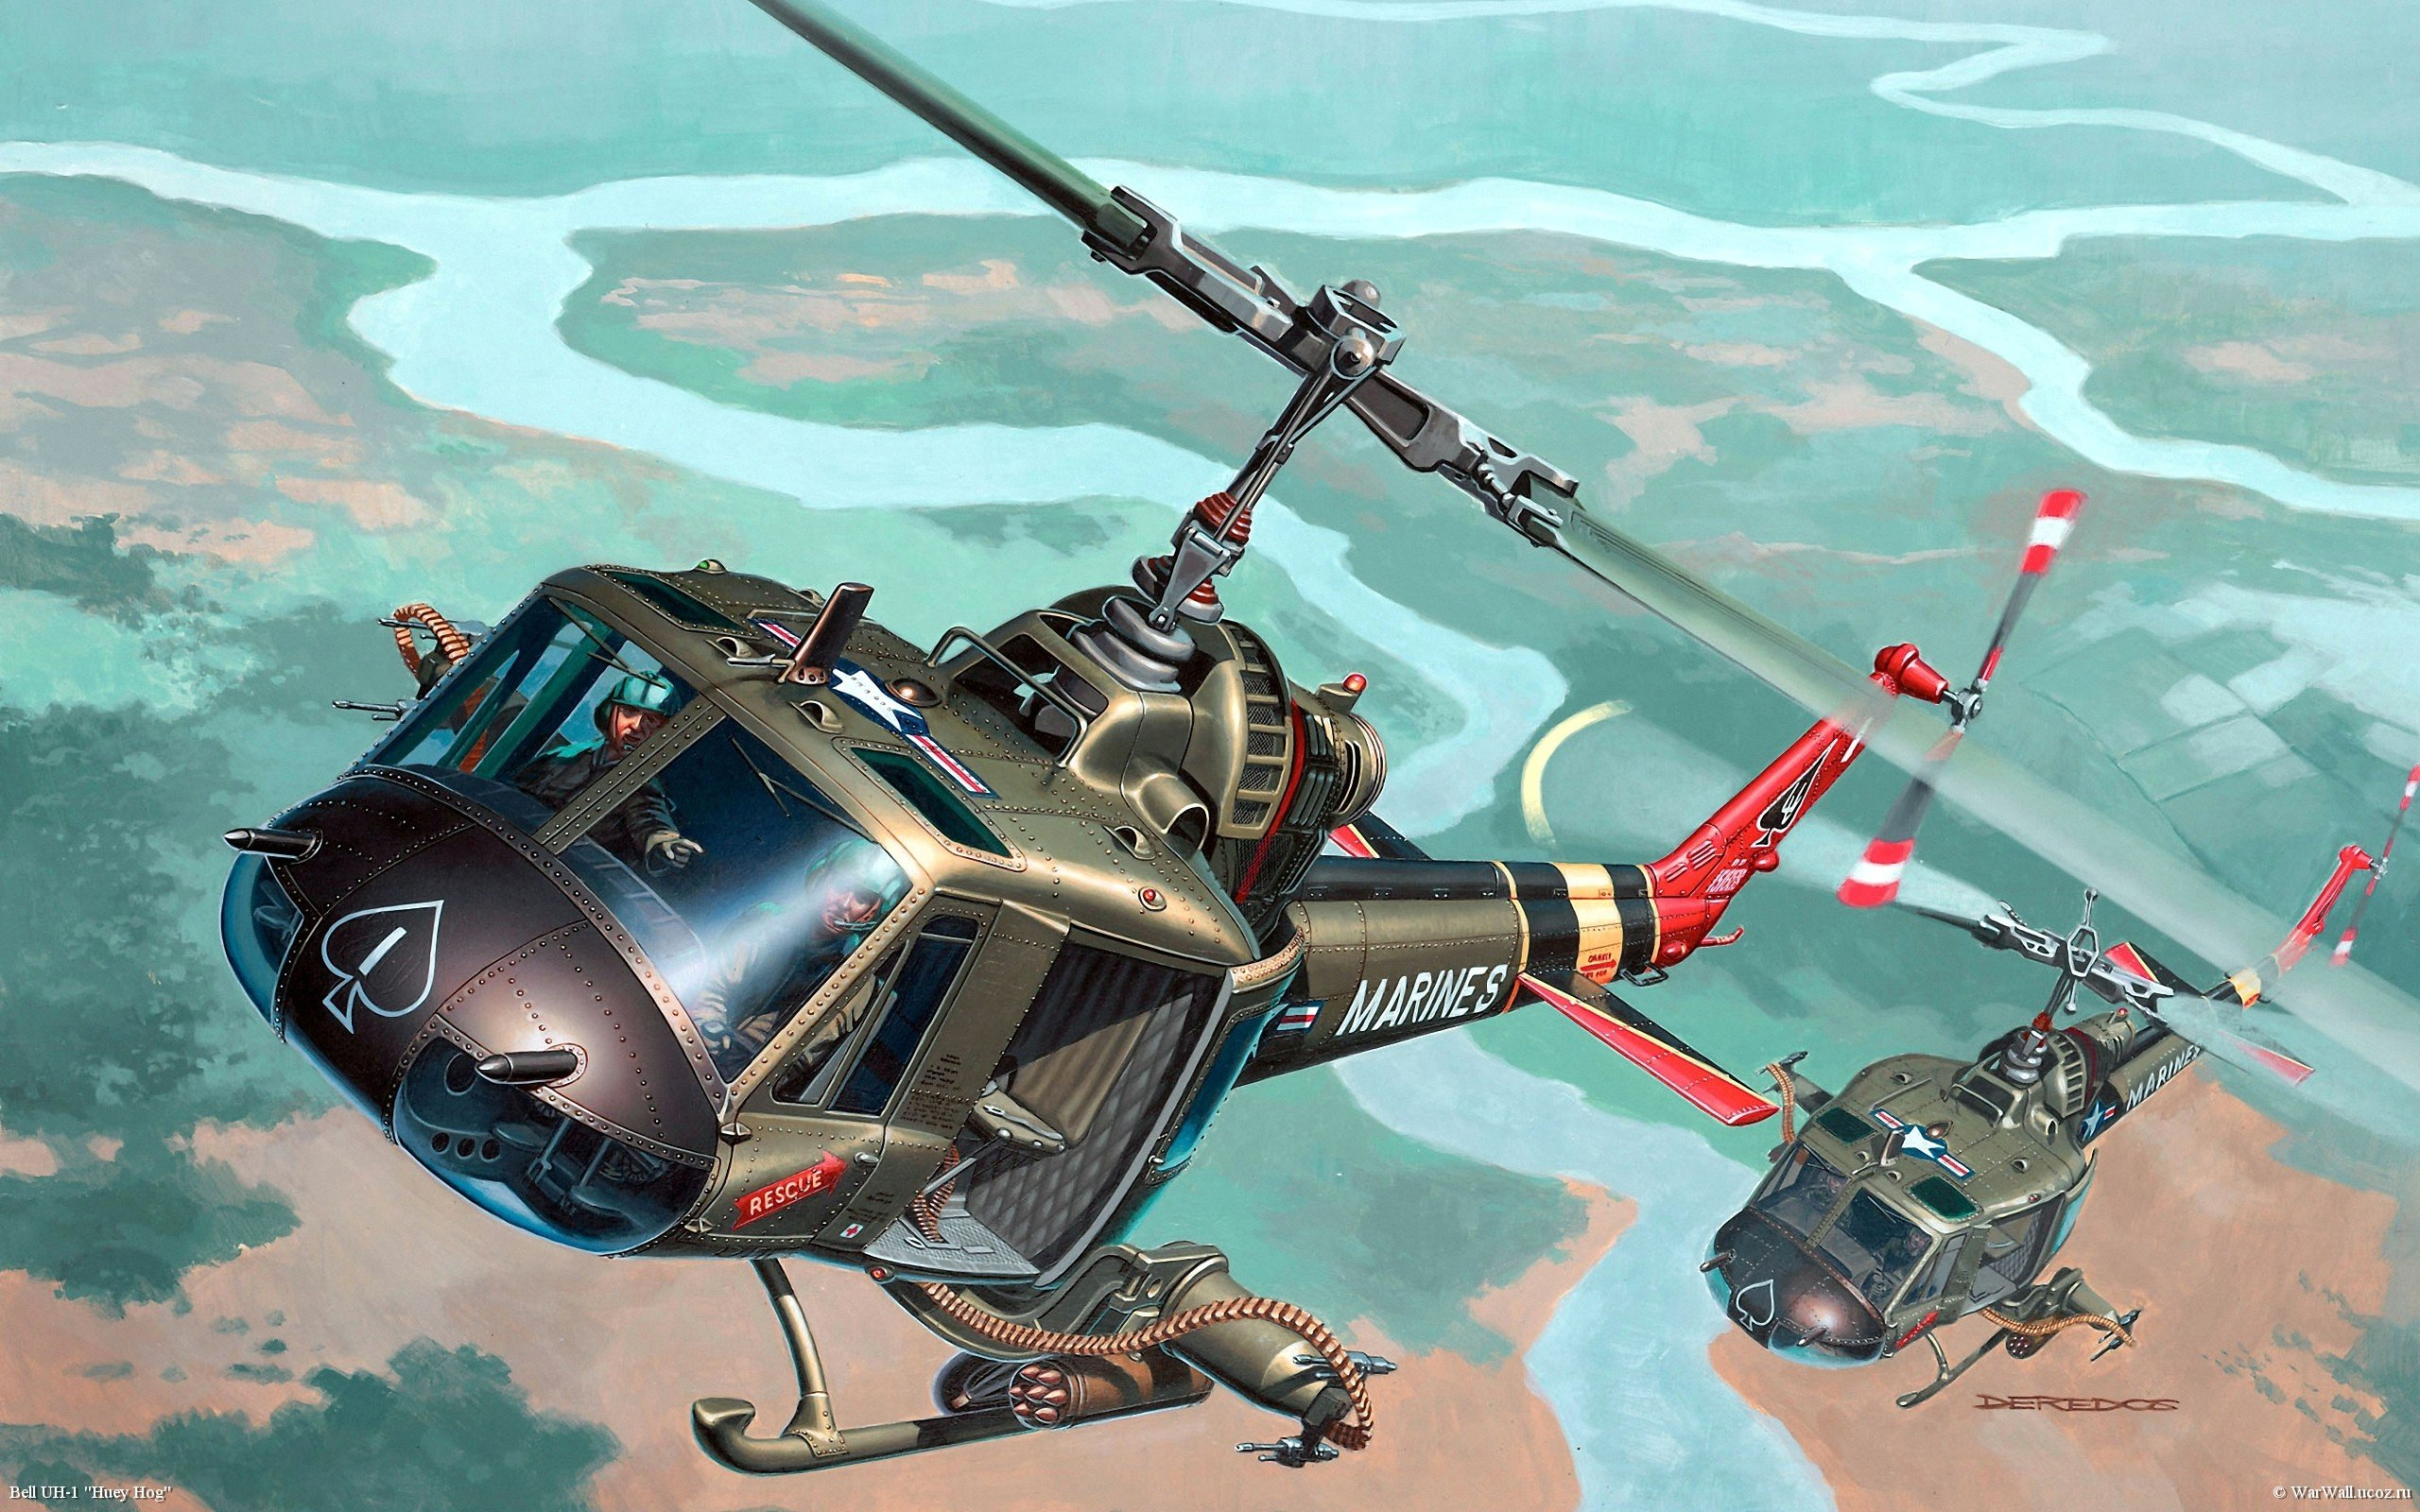 Aircraft Military Helicopters Artwork Vehicles Rivers Art Wallpaper